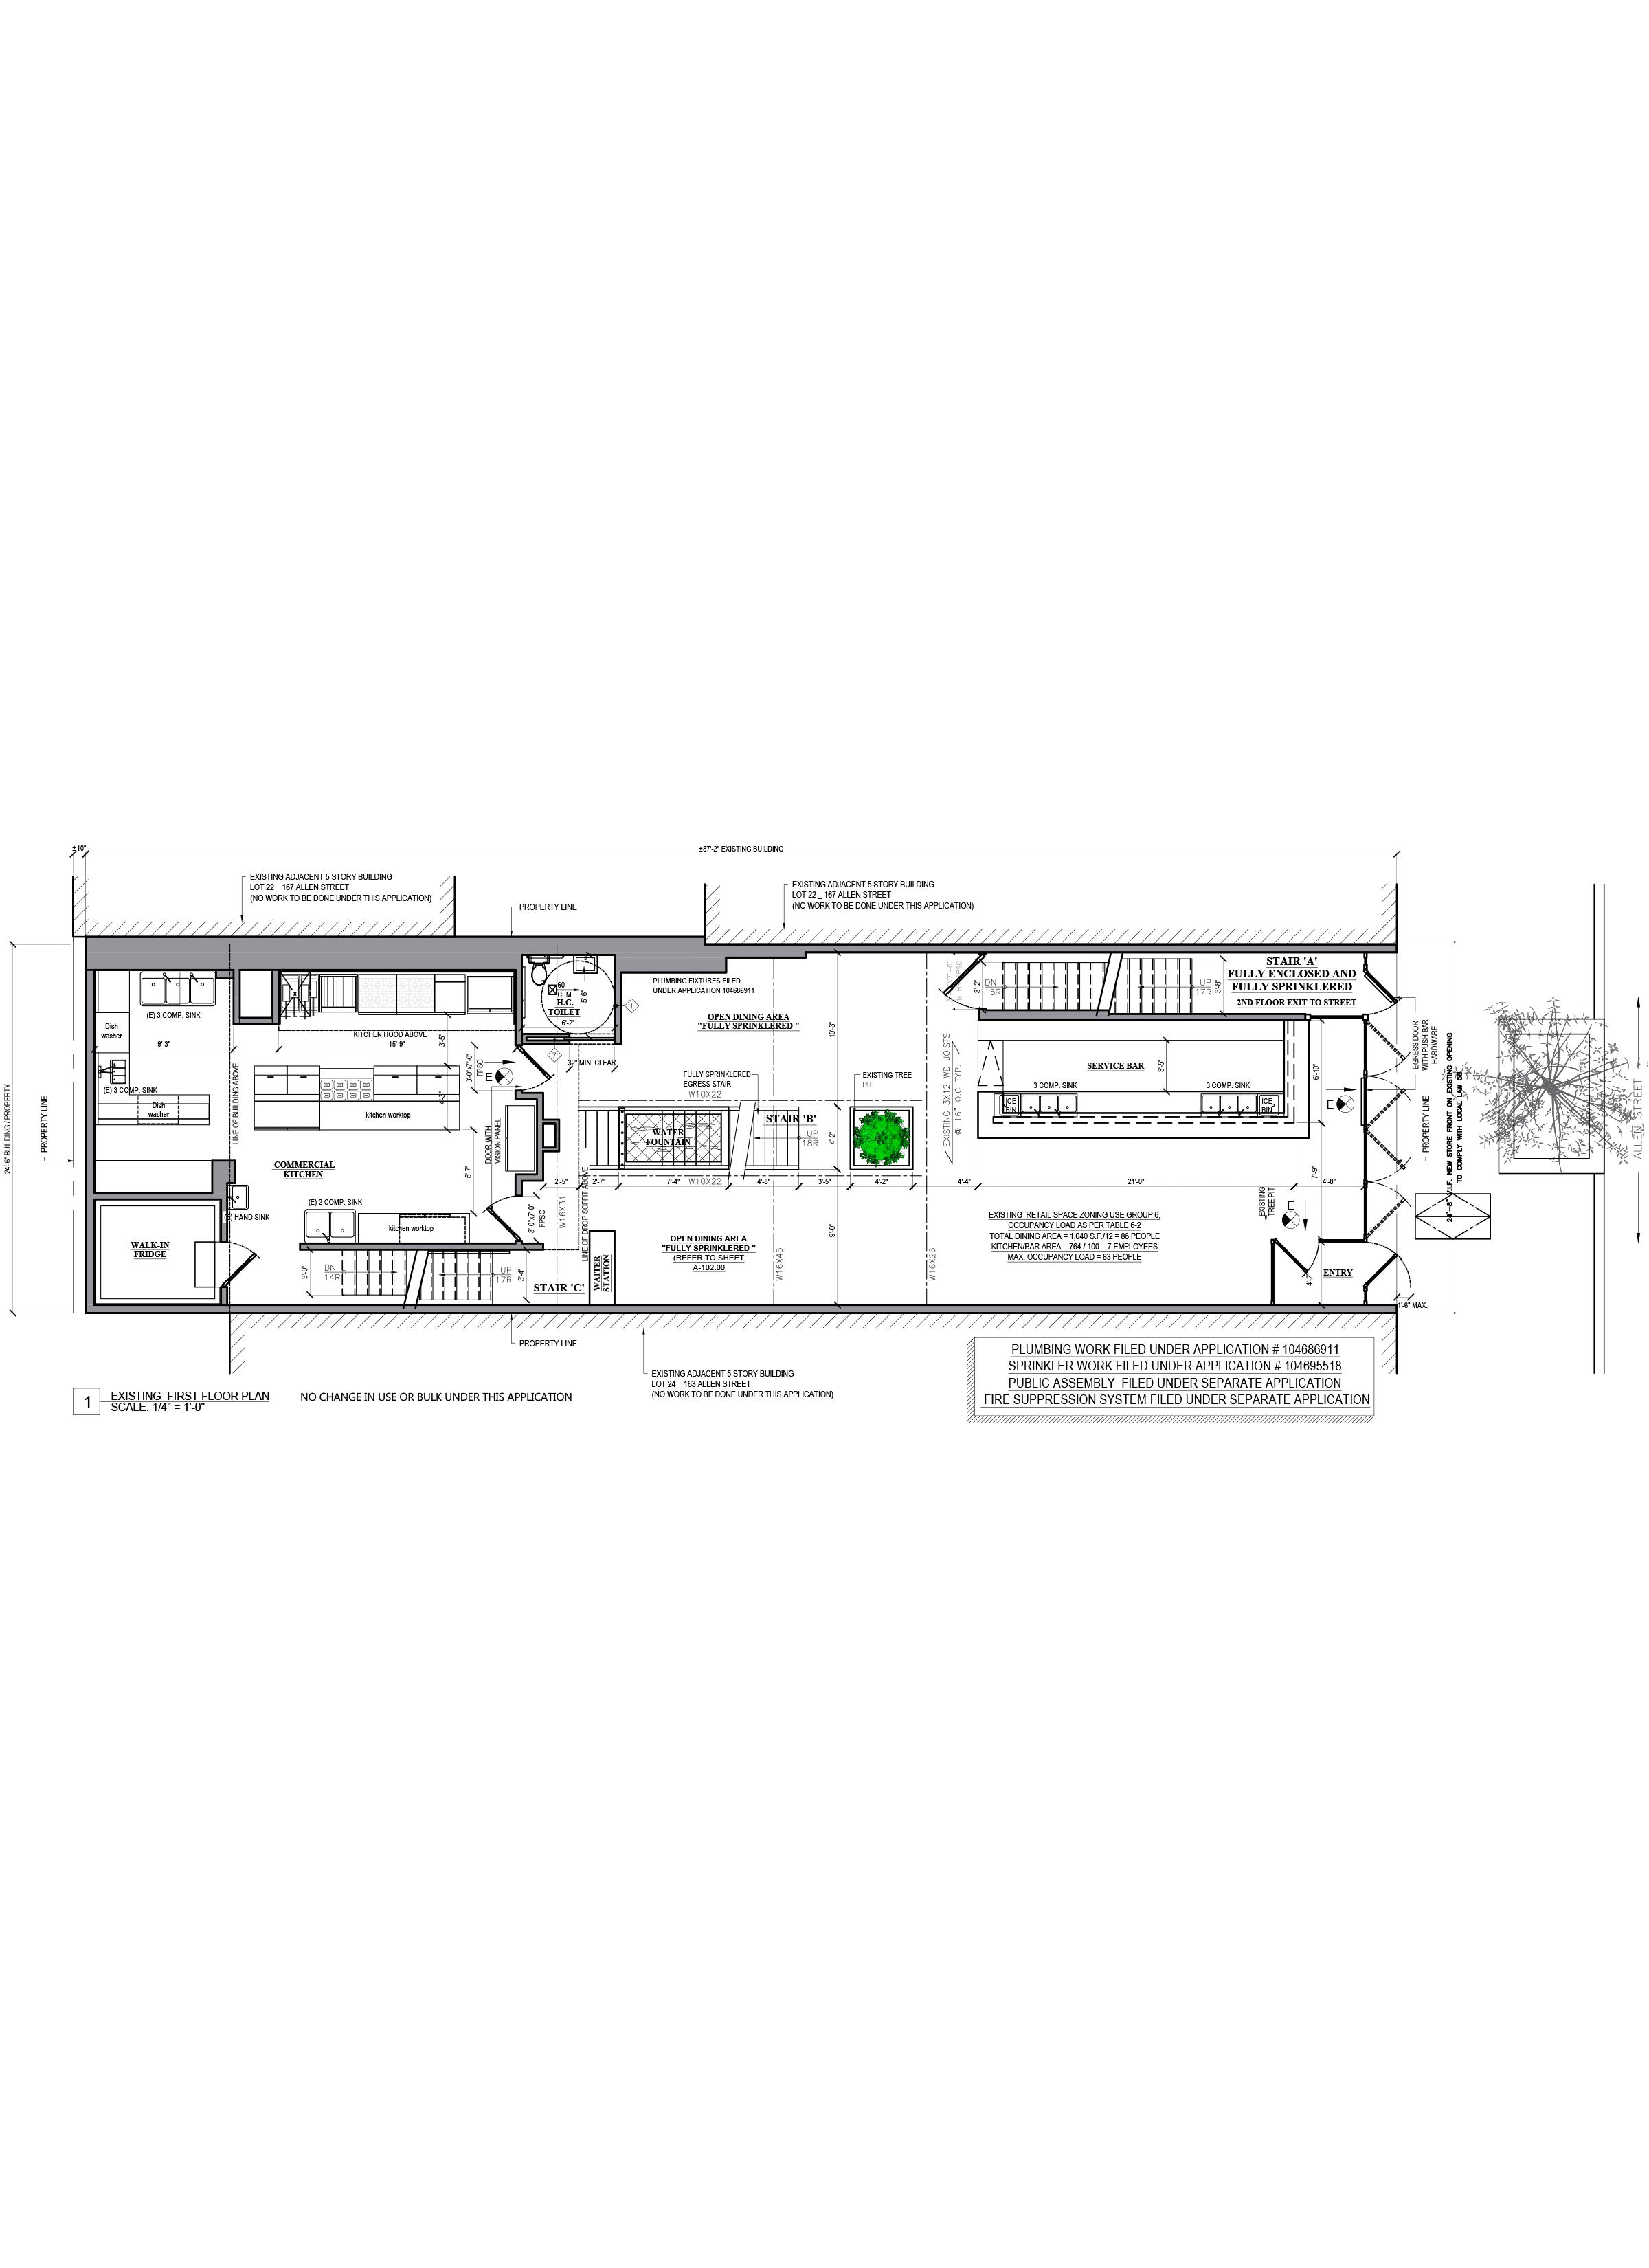 AutoCAD drafting_Restaurant floor plan design_Rayuela_NYC